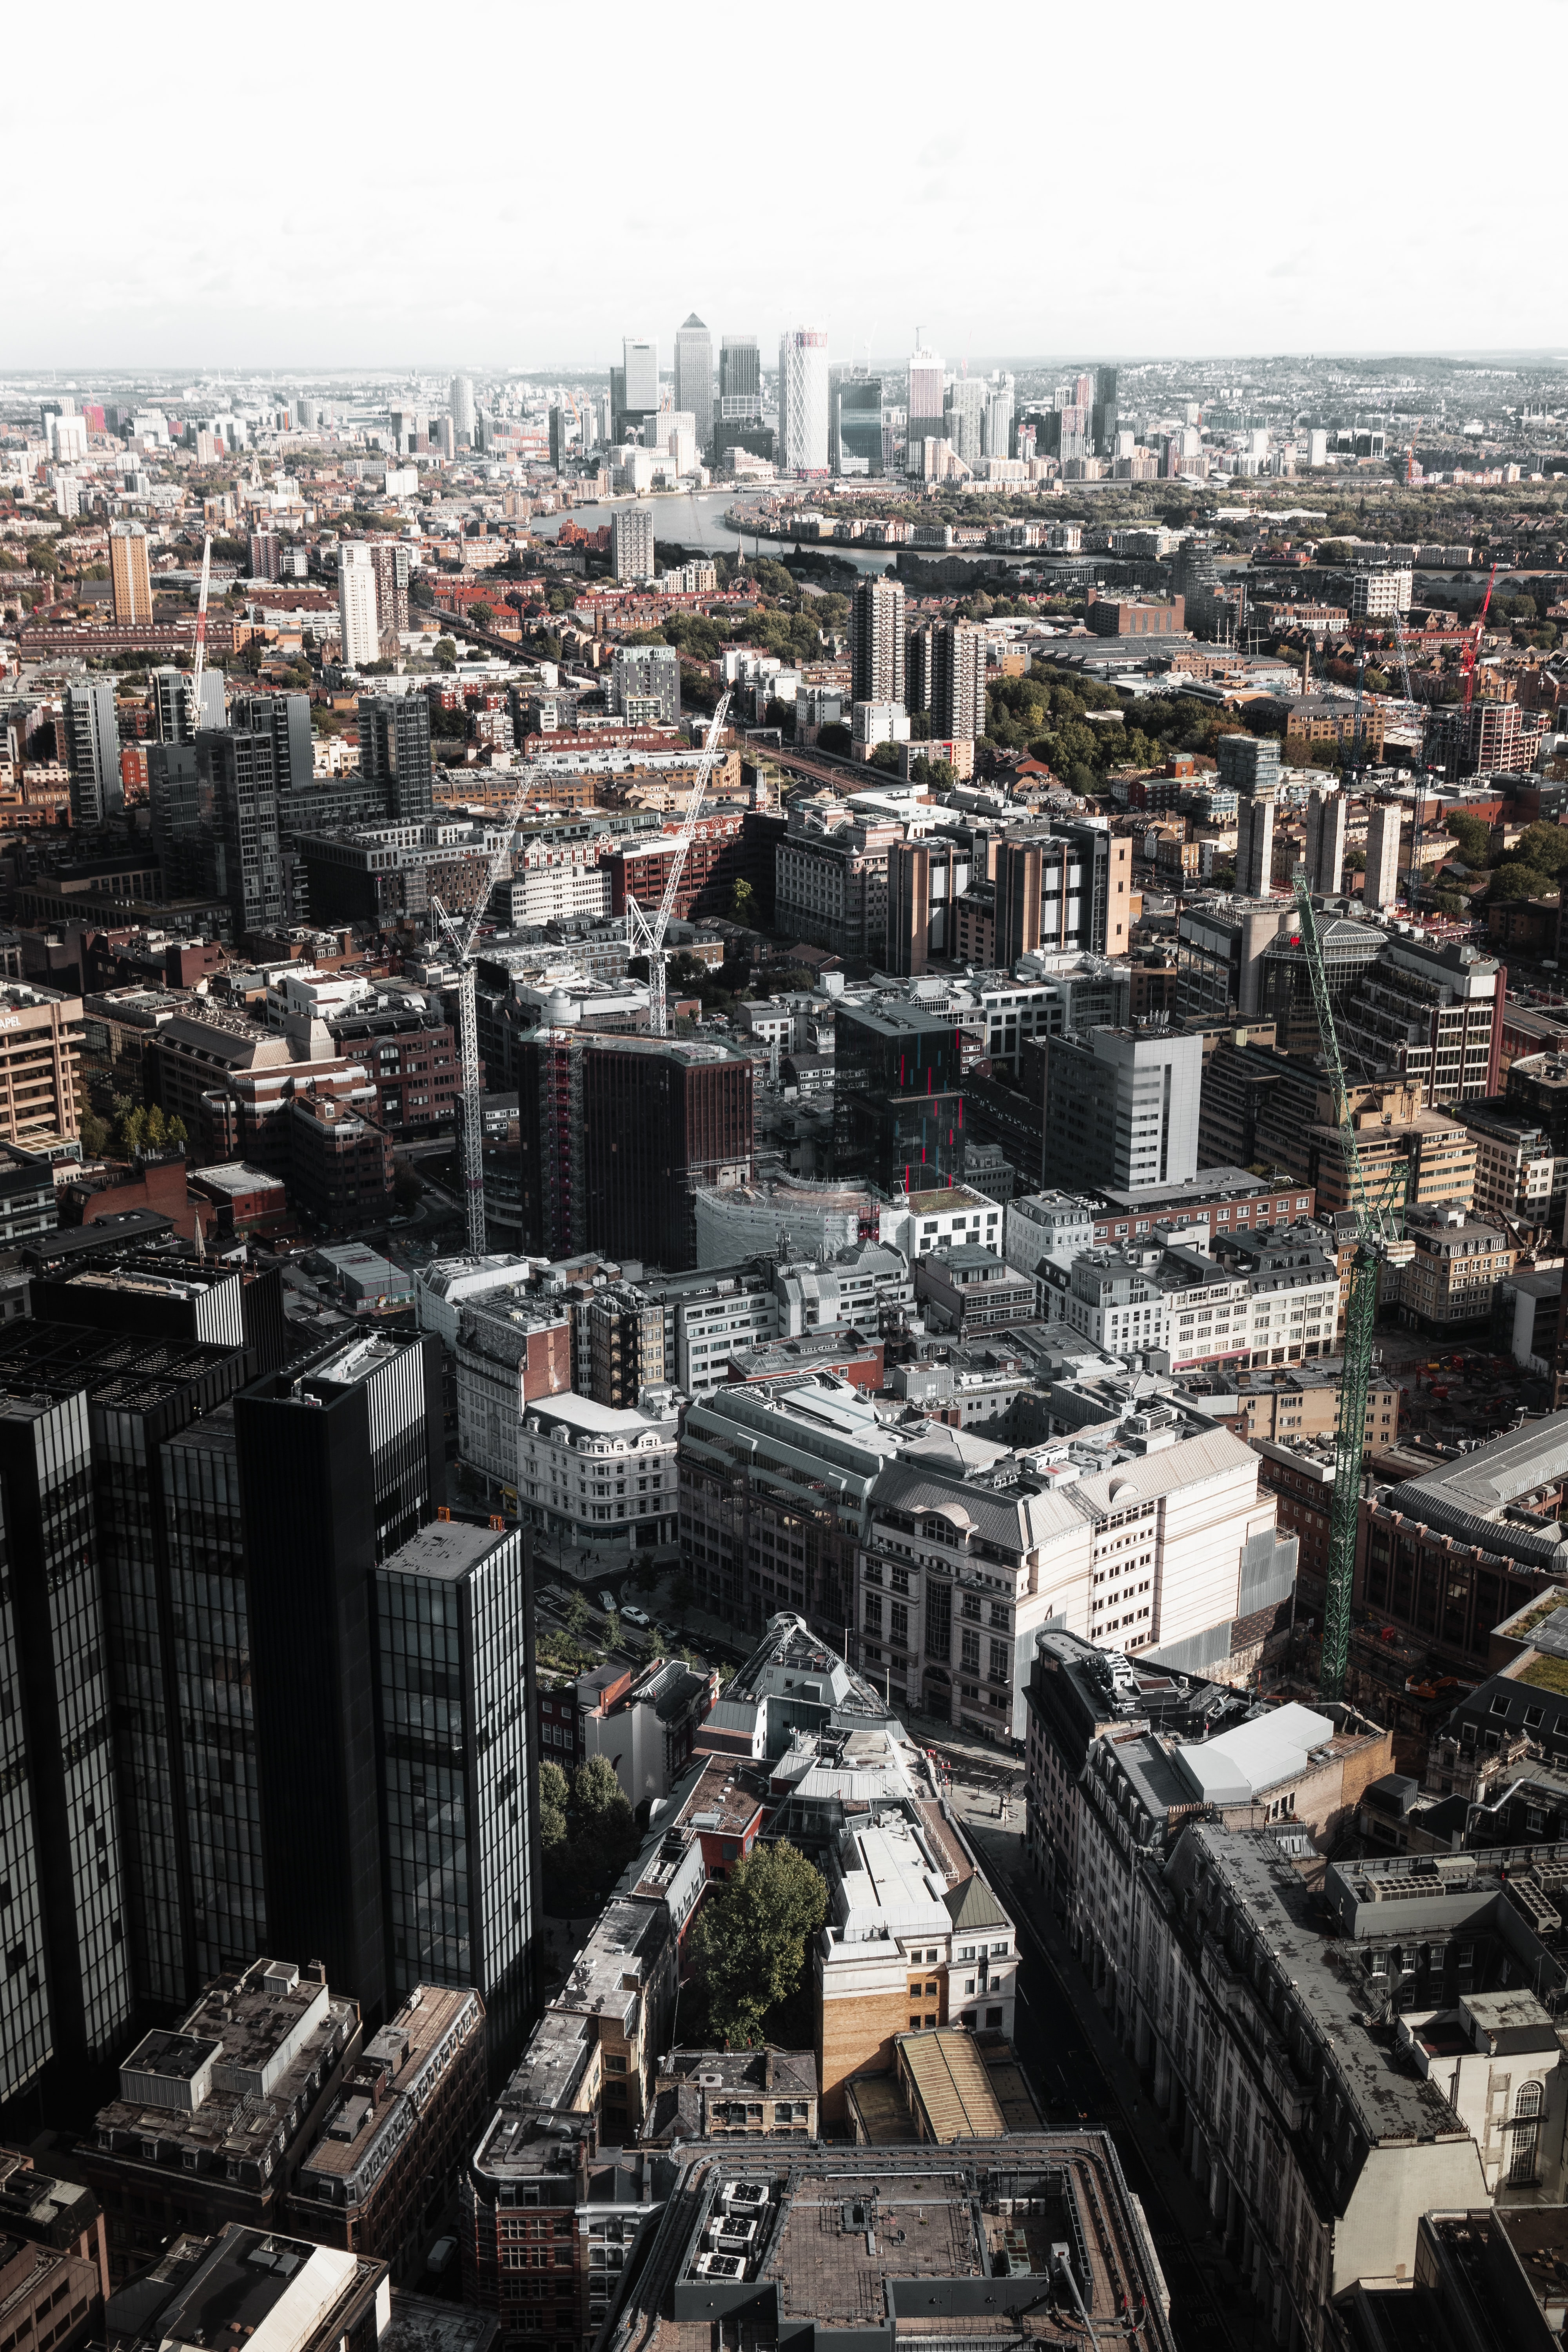 aerial photography of cityscape during daytime